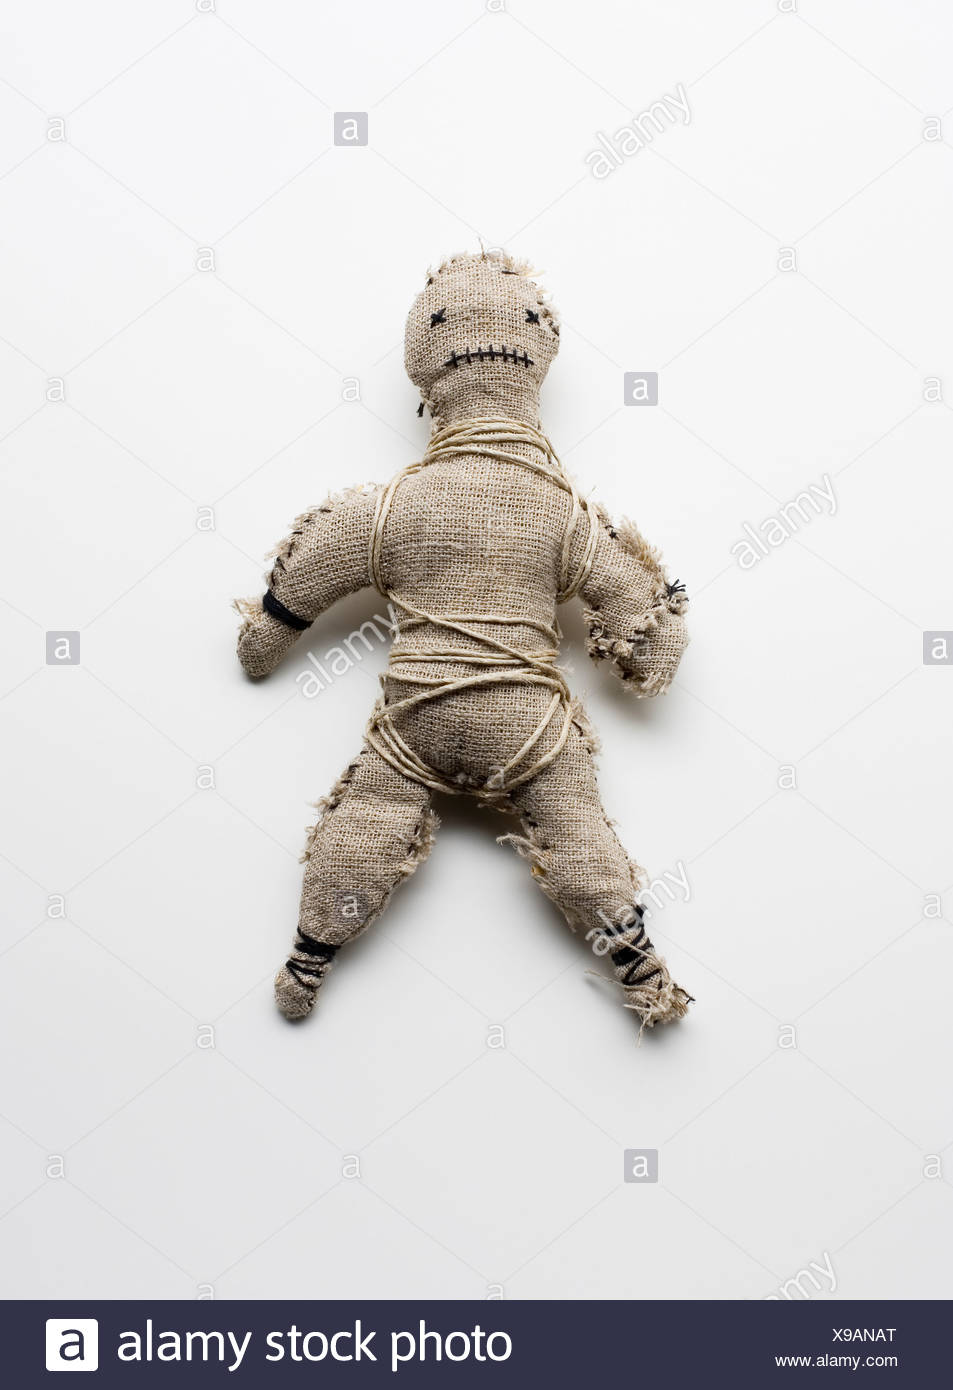 A voodoo doll - Stock Image